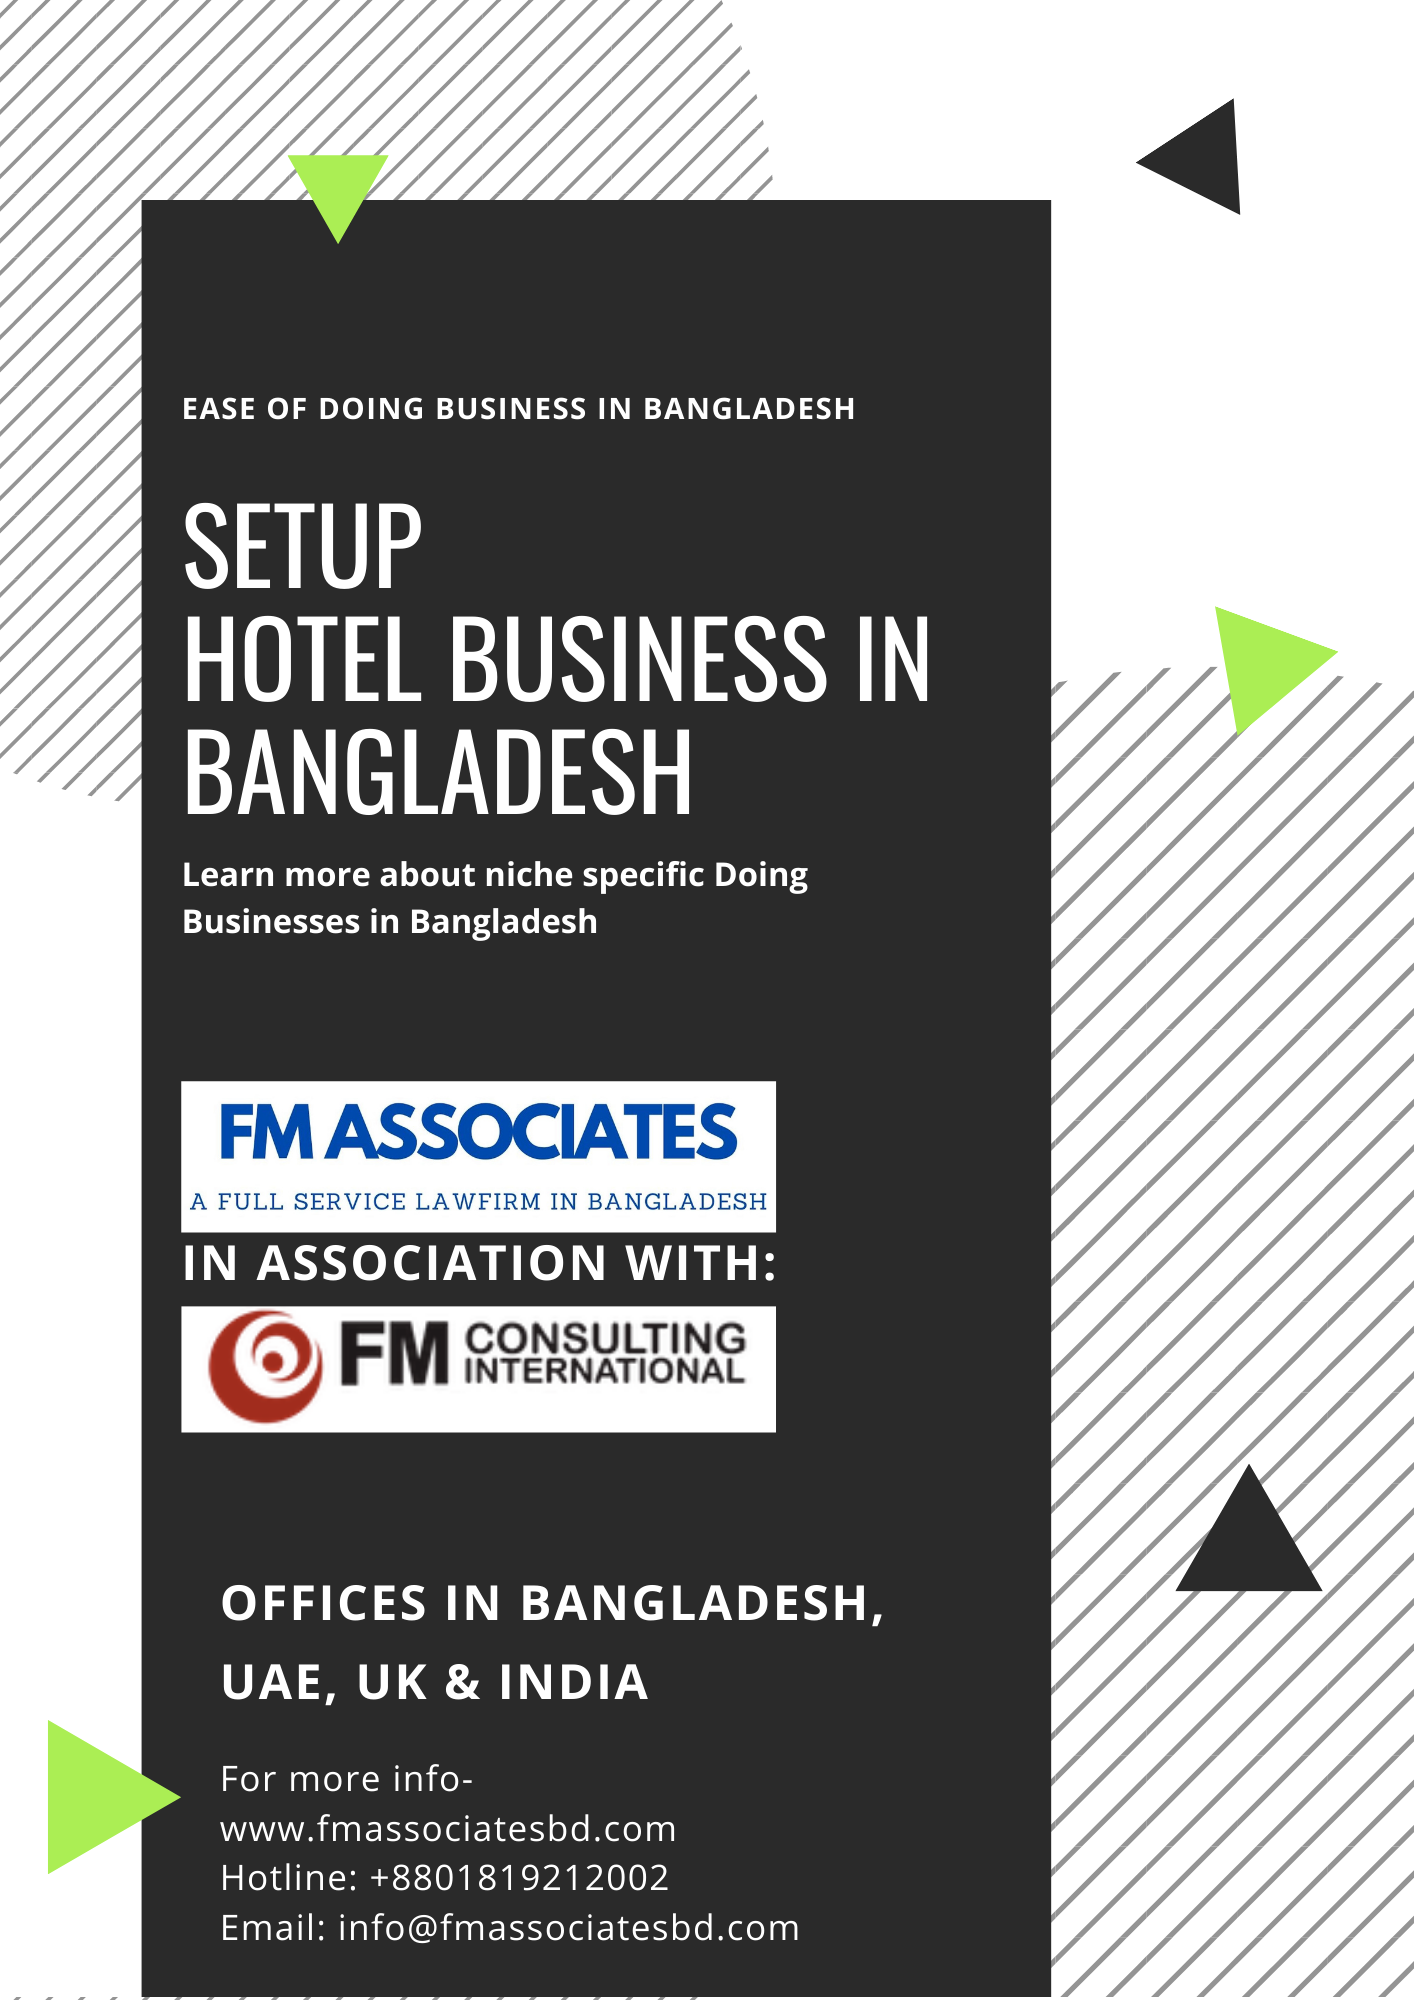 How to Setup Hotel & Tourism Business in Bangladesh